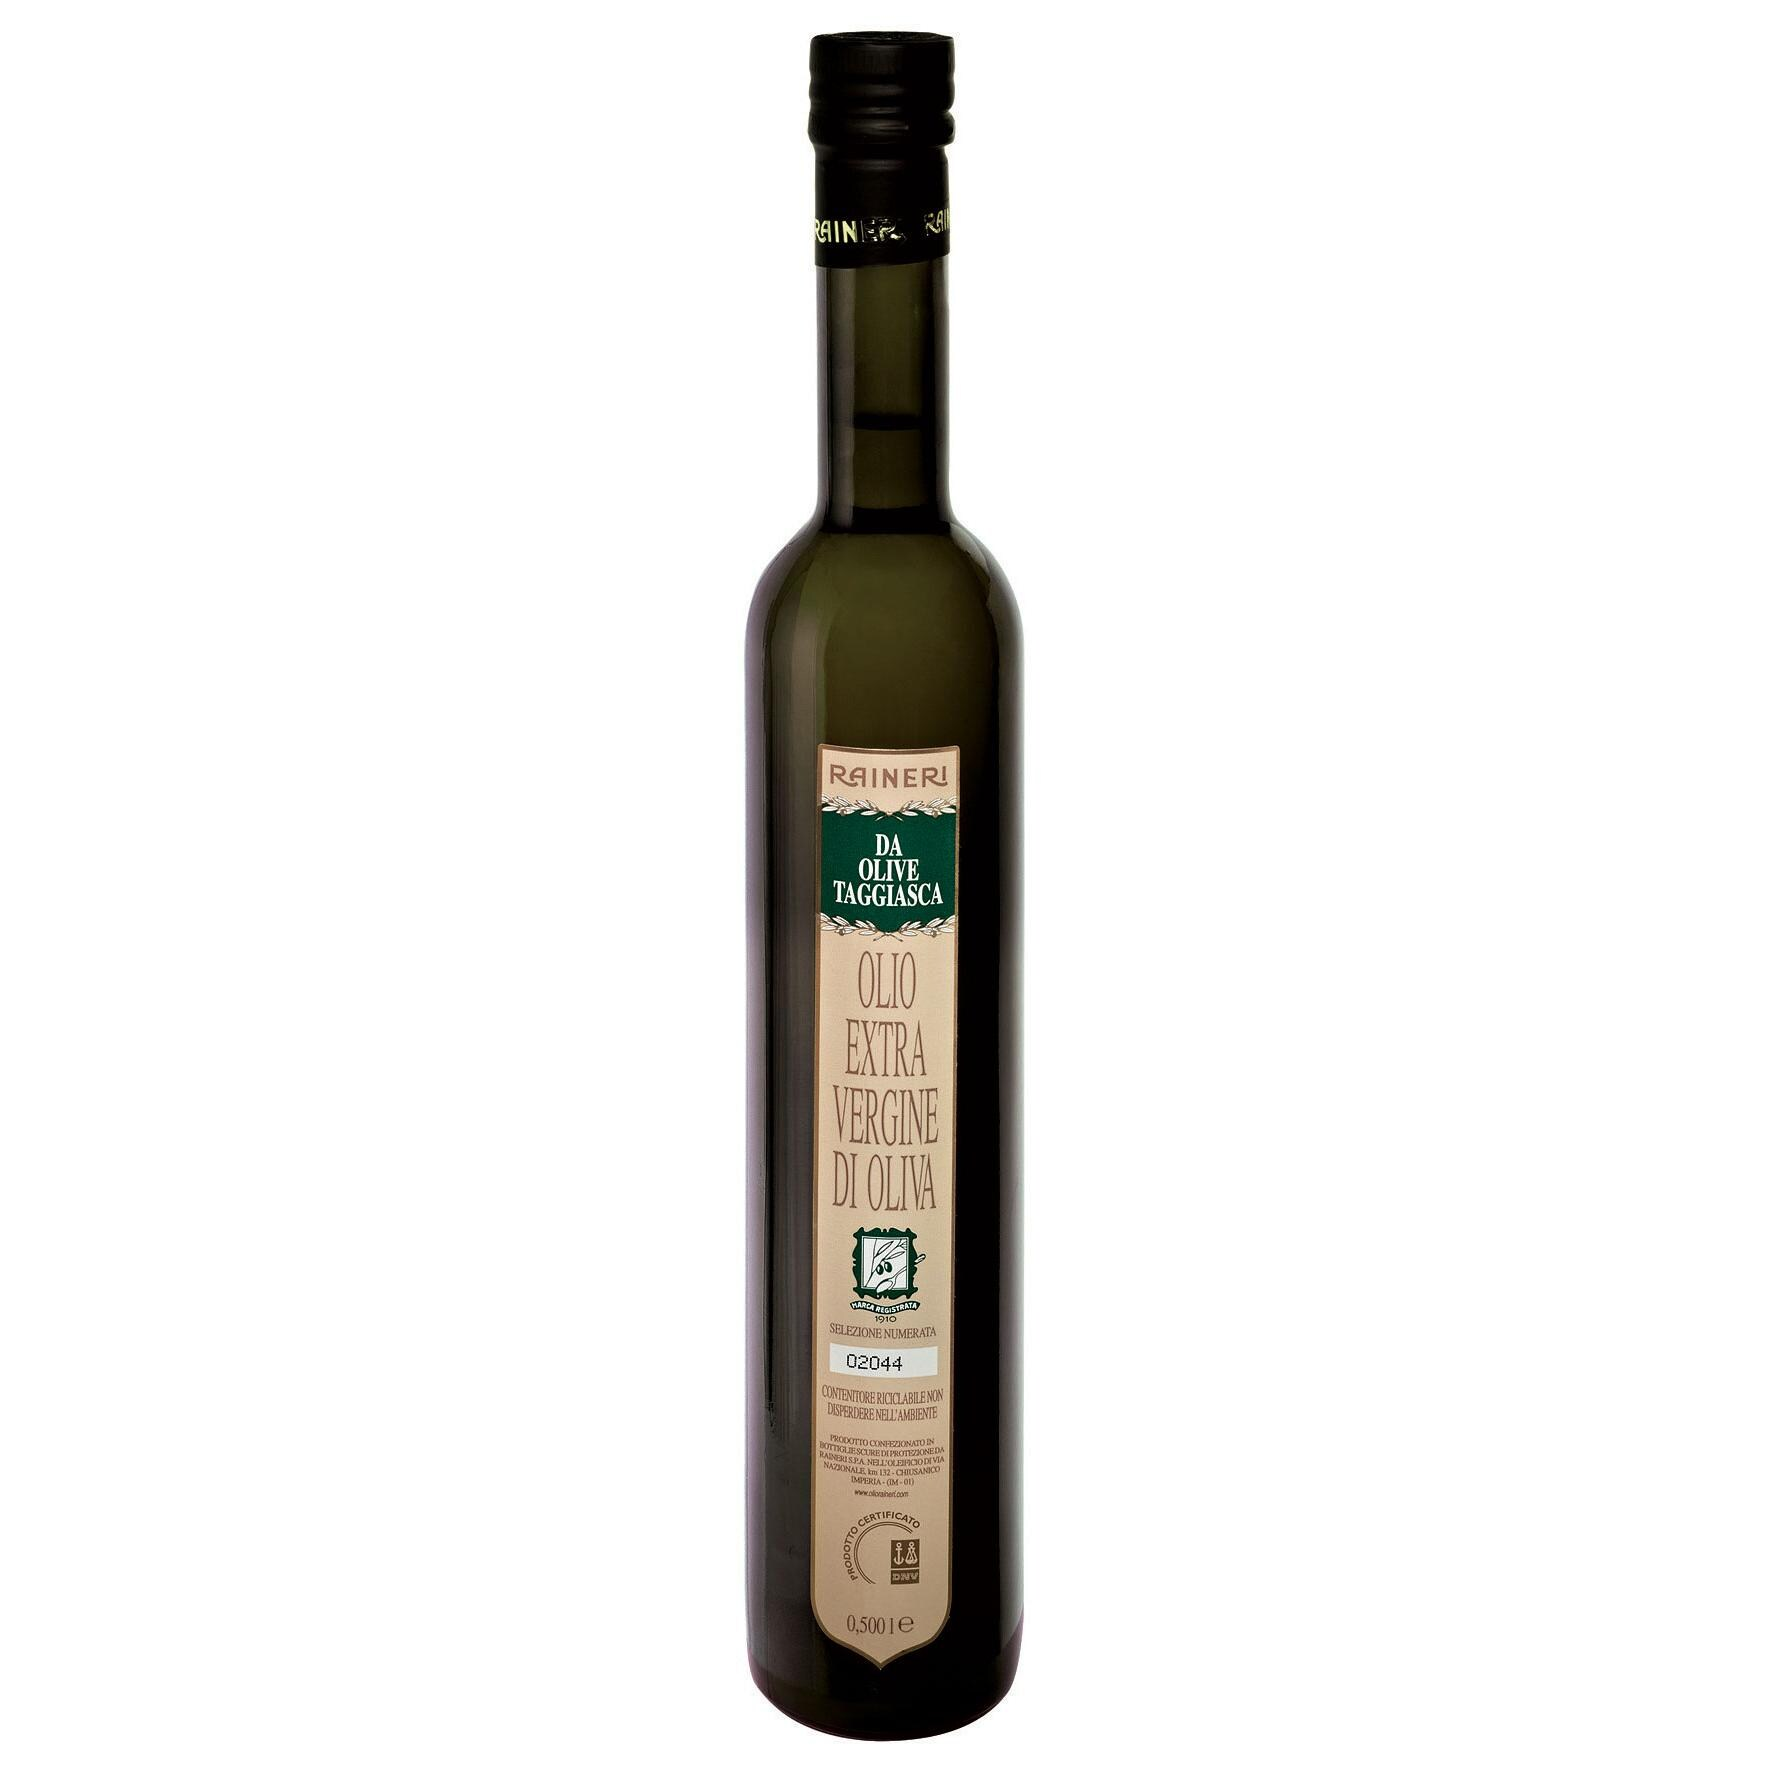 Raineri - Natives Olivenöl Extra Da Olive Taggiasca - 500ml